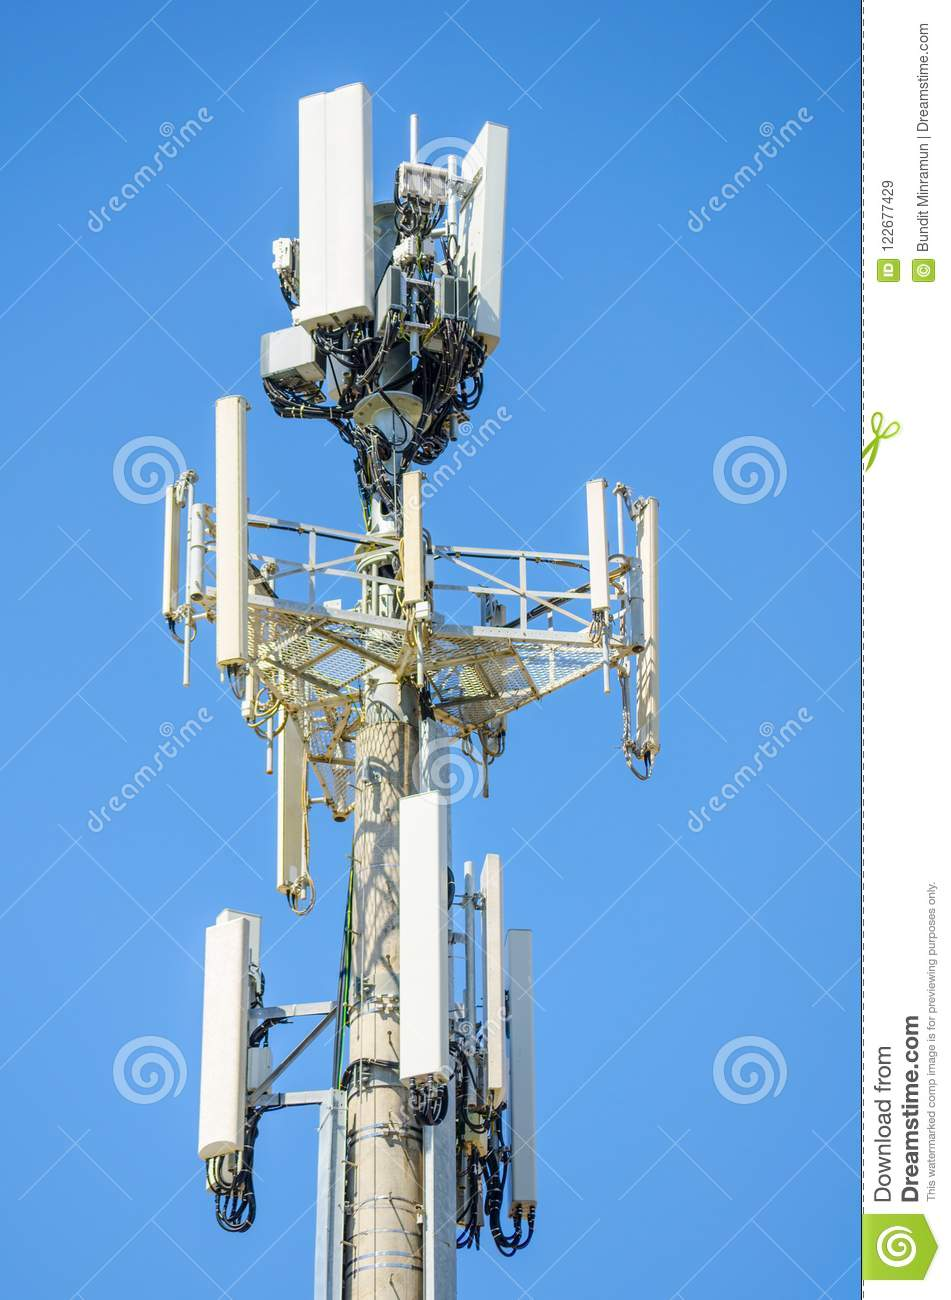 Cellular Radio Antenna With Cable For The Telecommunications Tower Isolated  On Blue Sky Background. Stock Image - Image of cellular, metal: 122677429